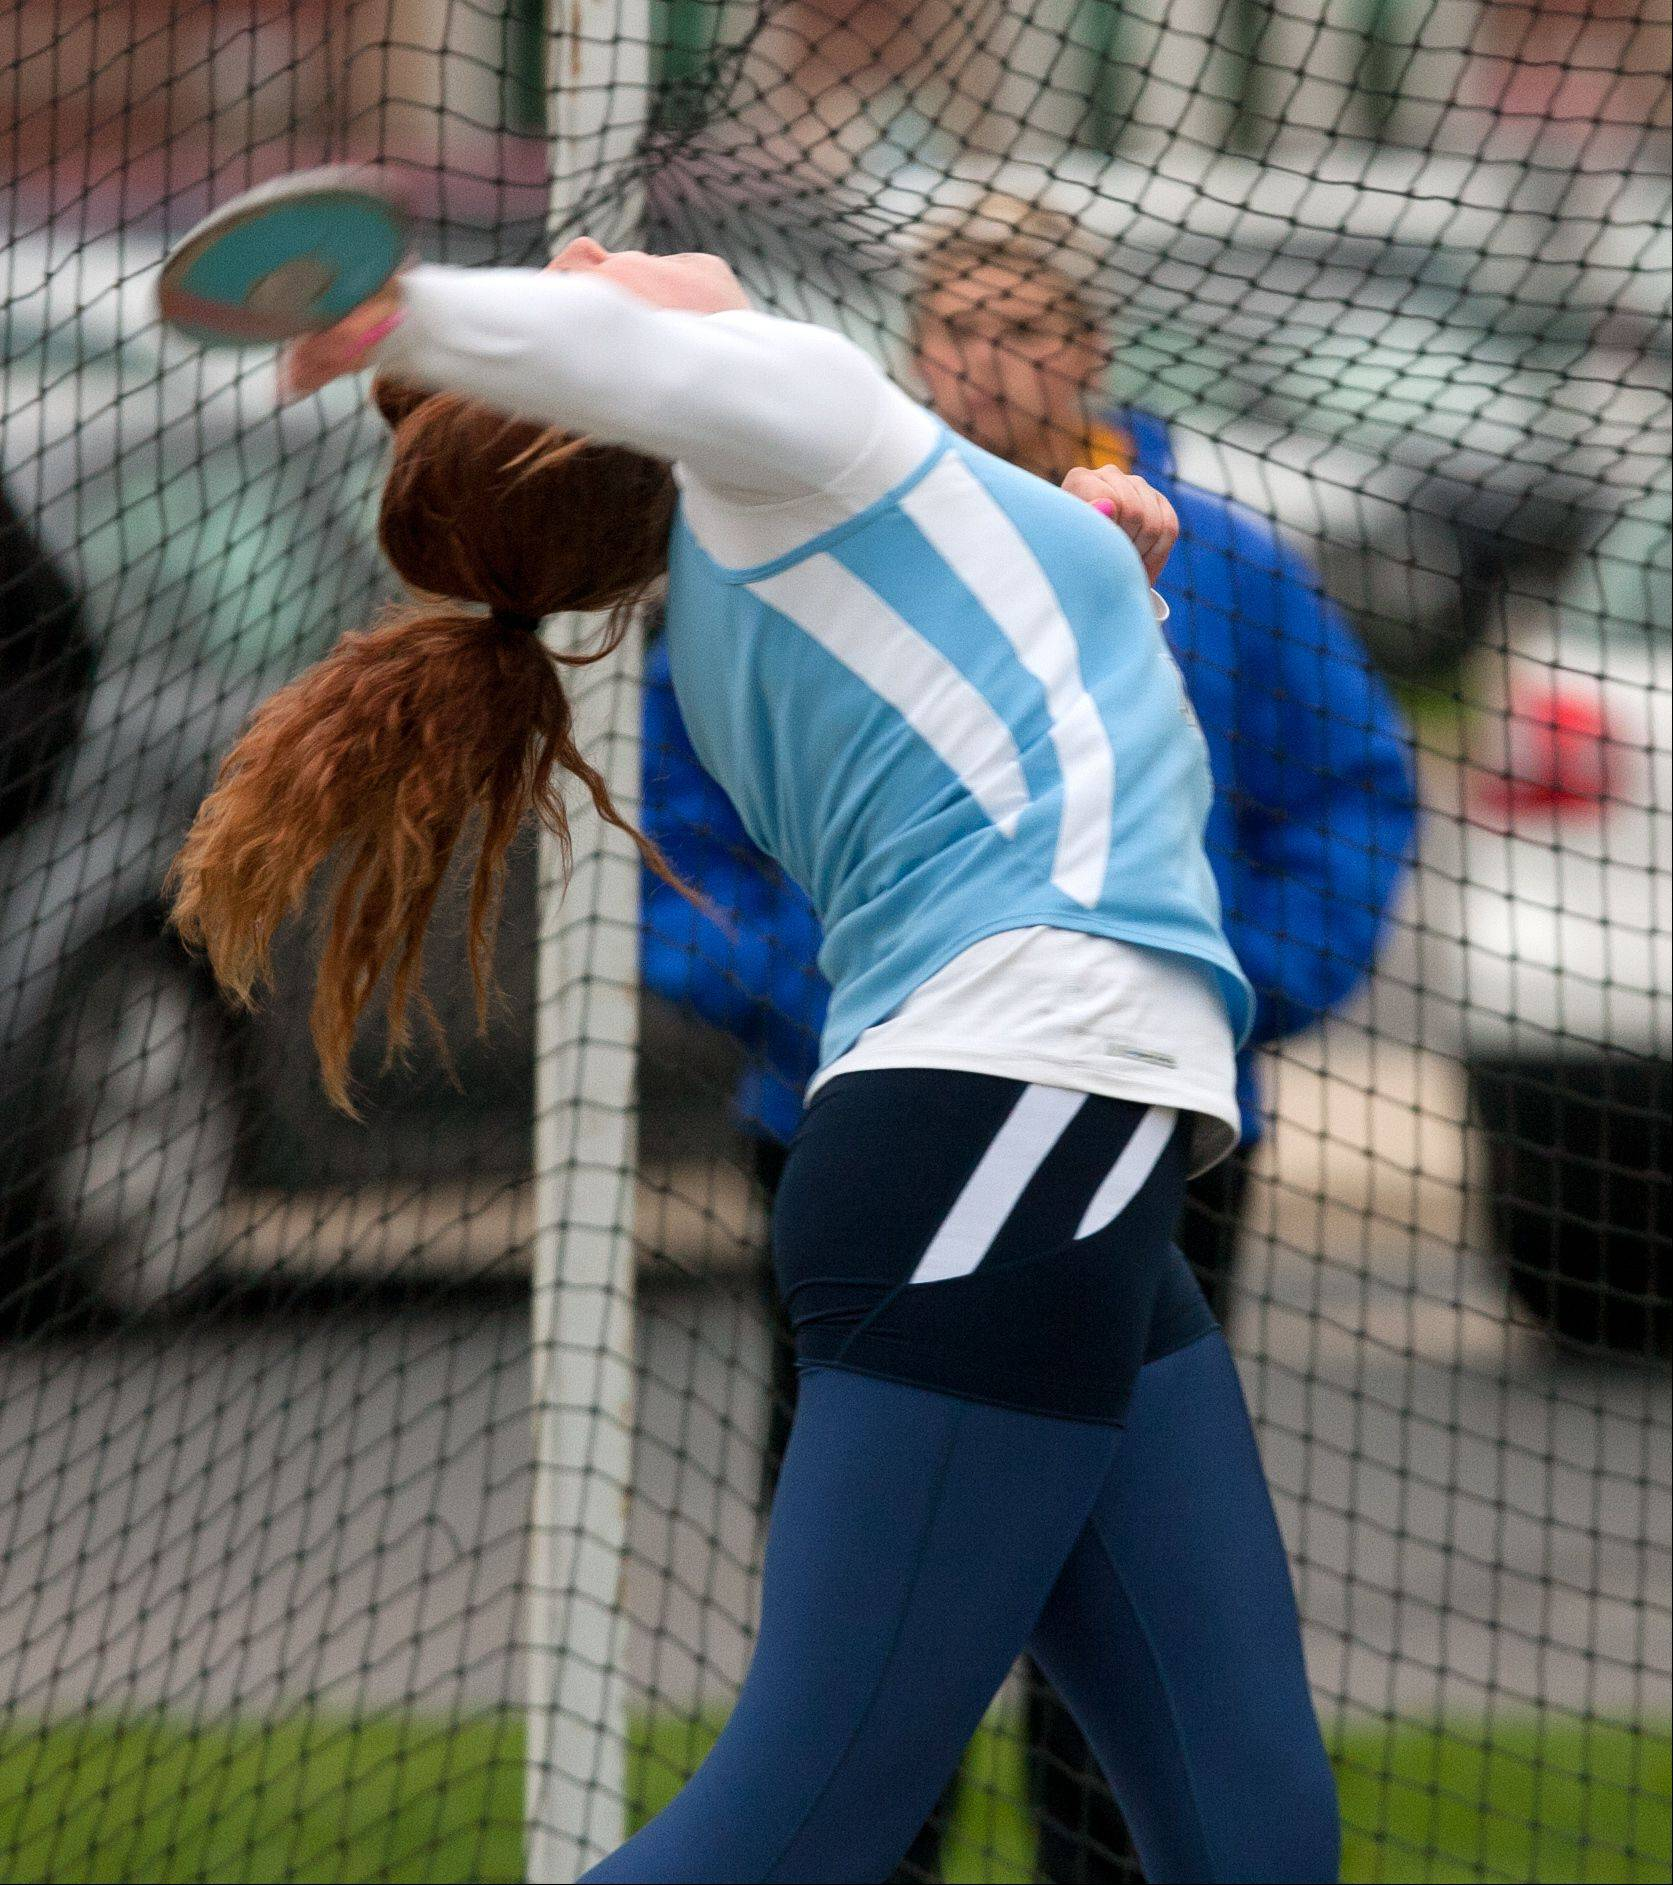 Prospect's Erin Reese produces a second-place finish in the discus on Friday at York.